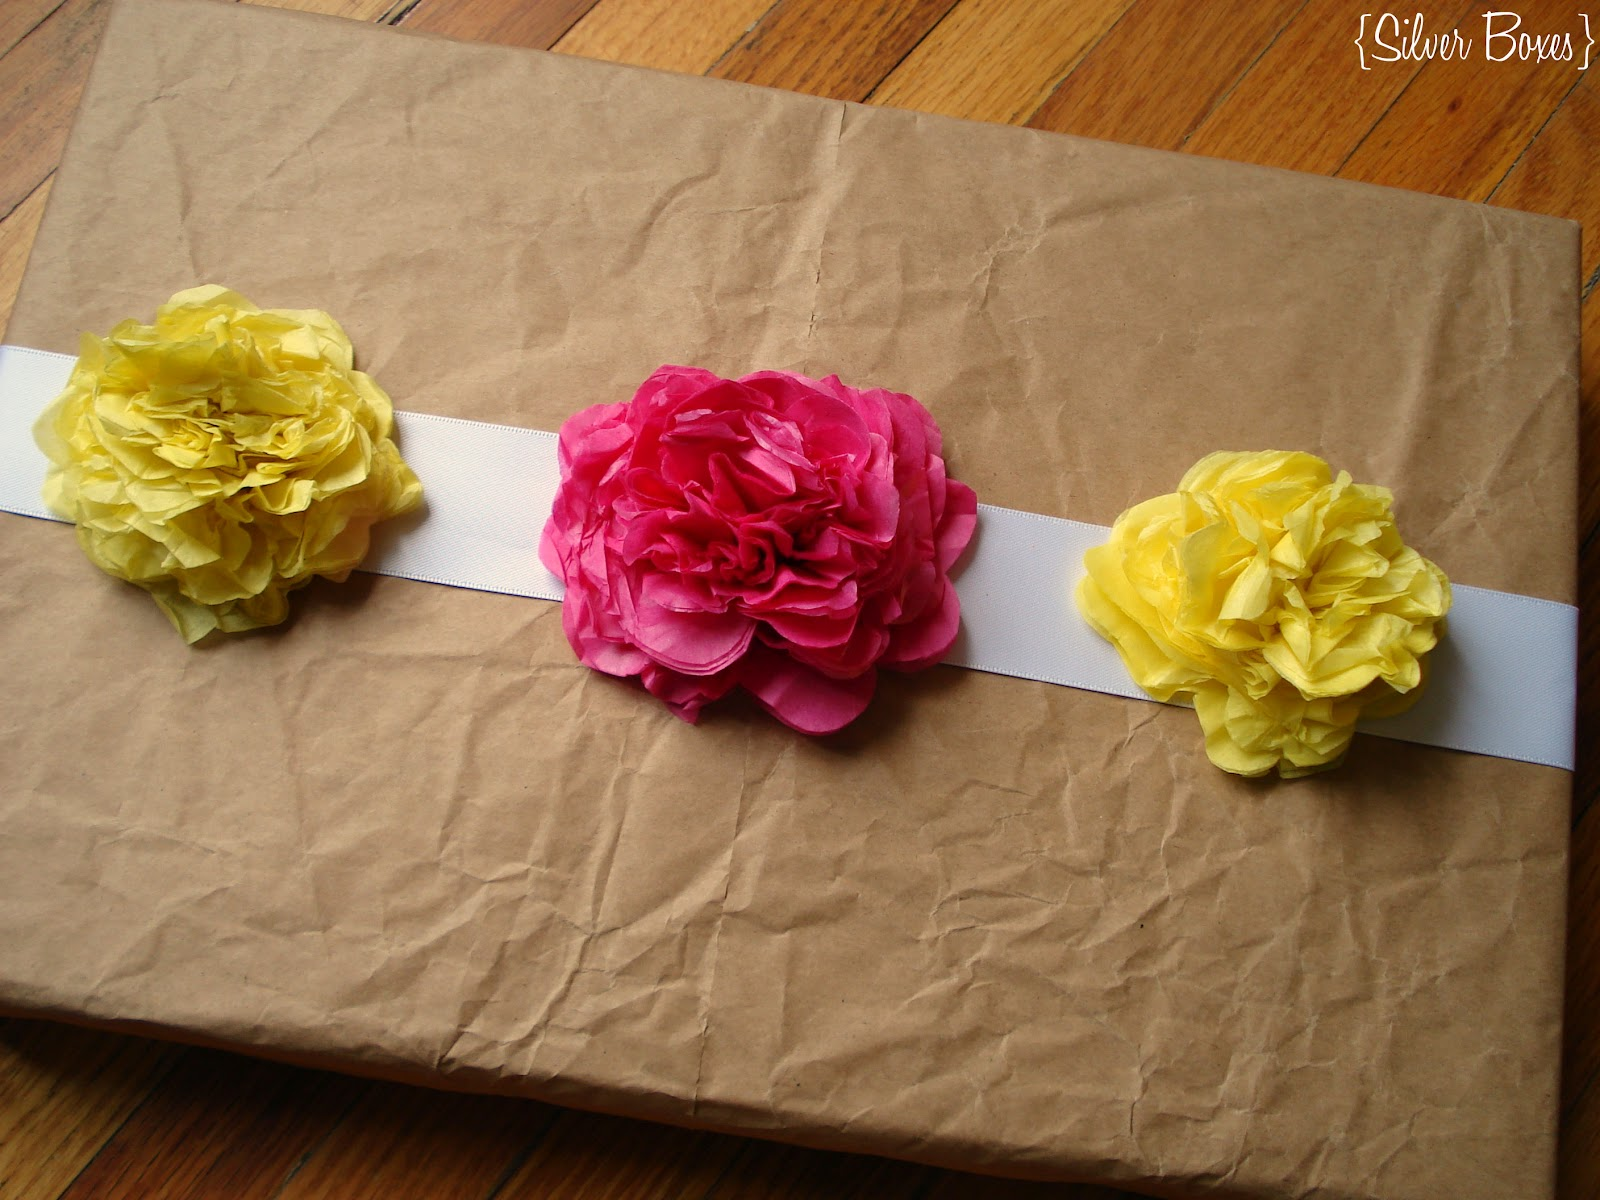 Silver boxes tissue paper flowers to embellish a gift package mightylinksfo Gallery